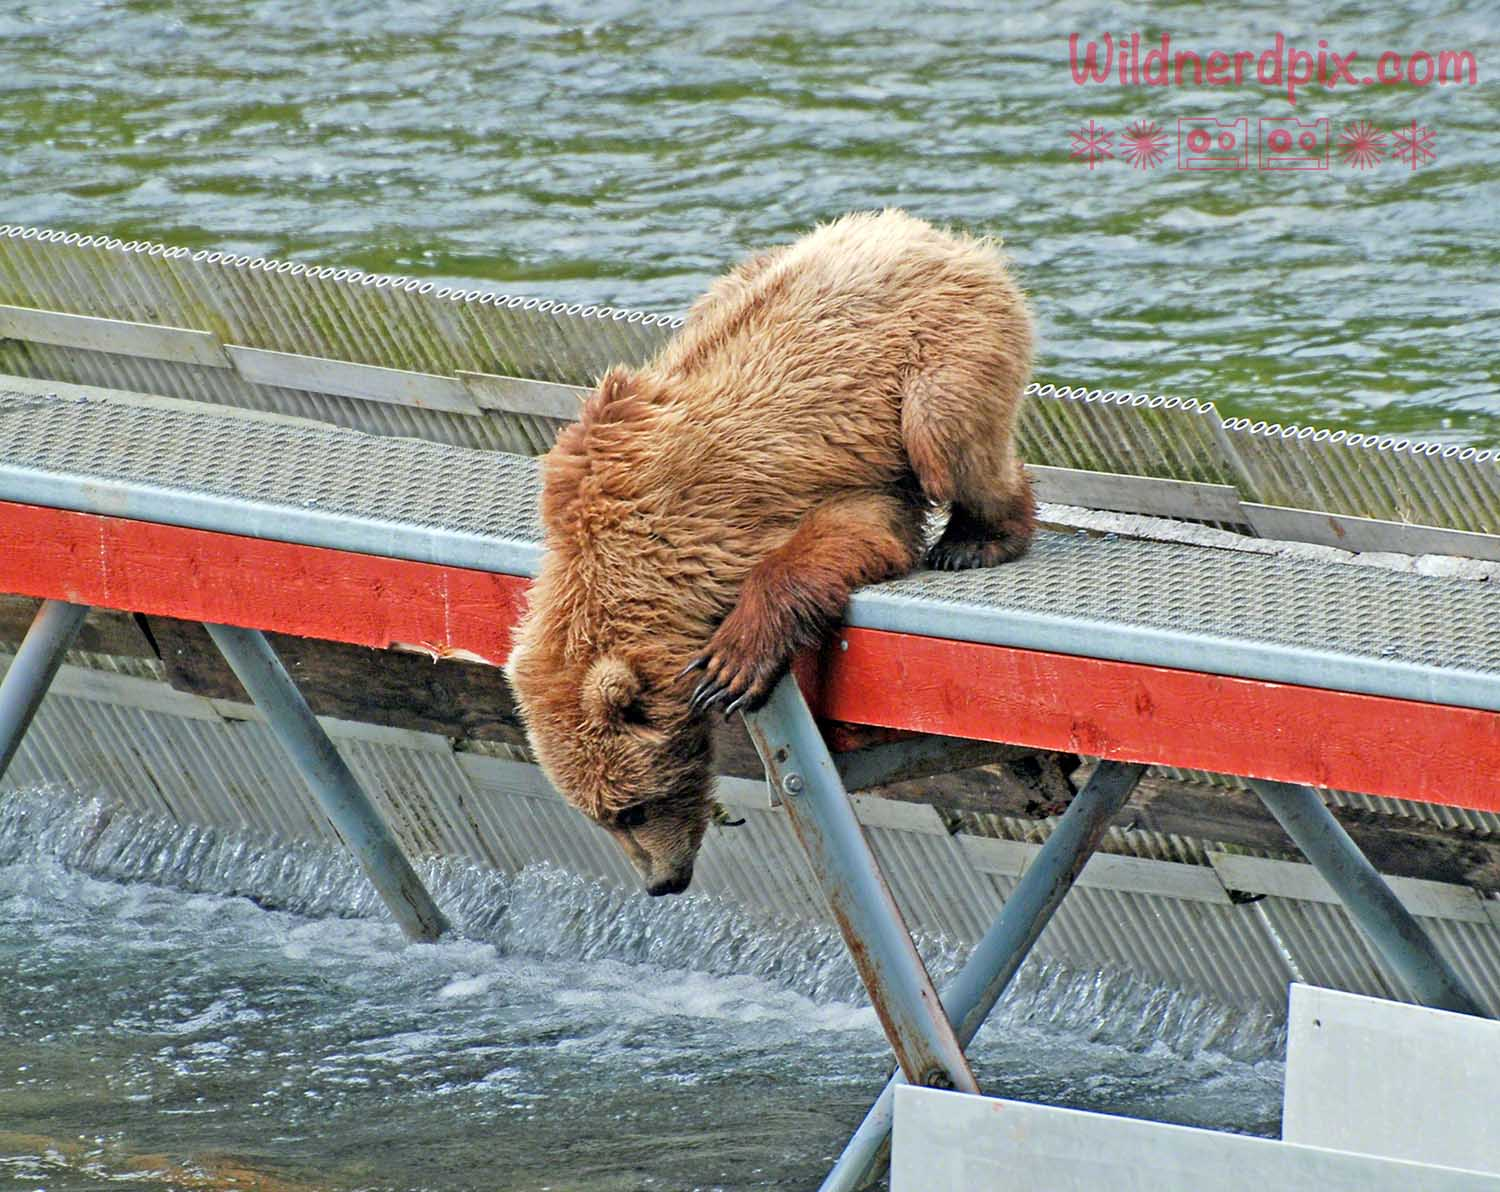 Kodiak Bear Trying to get fish from a weir on Kodiak Island (AE3-040)